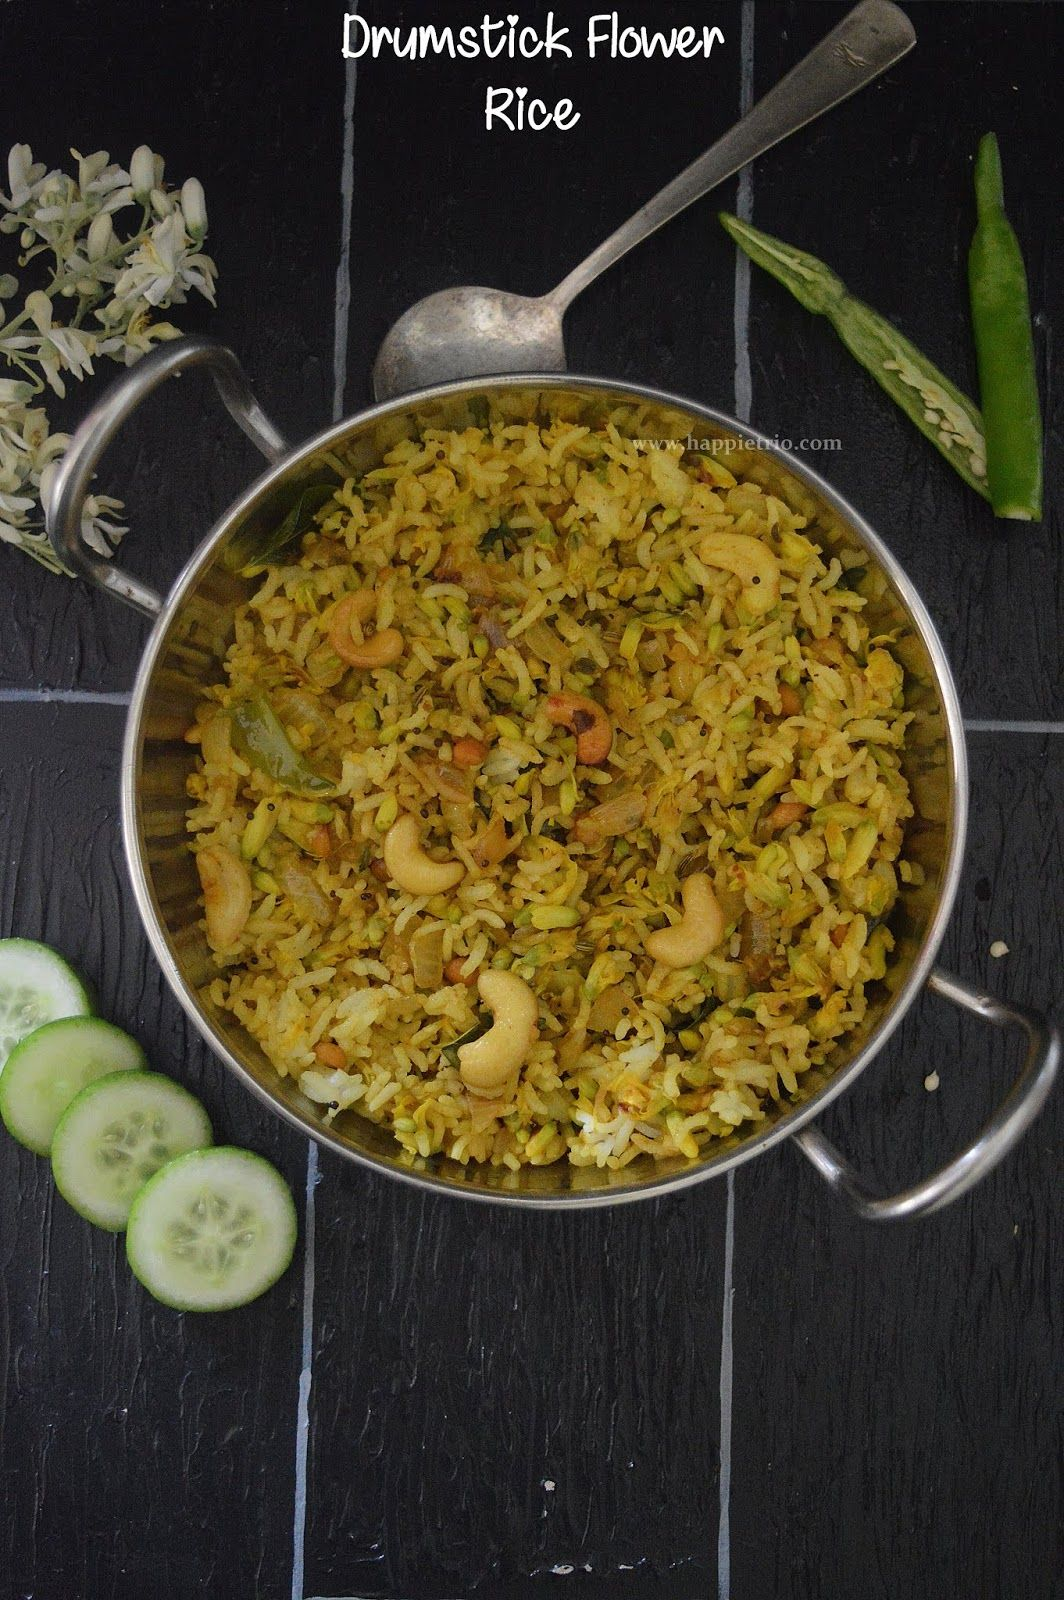 Drumstick Flowers Pulao Murunga Poo Sadham Moringa Flowers Rice Cook With Sharmila Recipe Delicious Healthy Recipes Cooking Indian Cooking Recipes